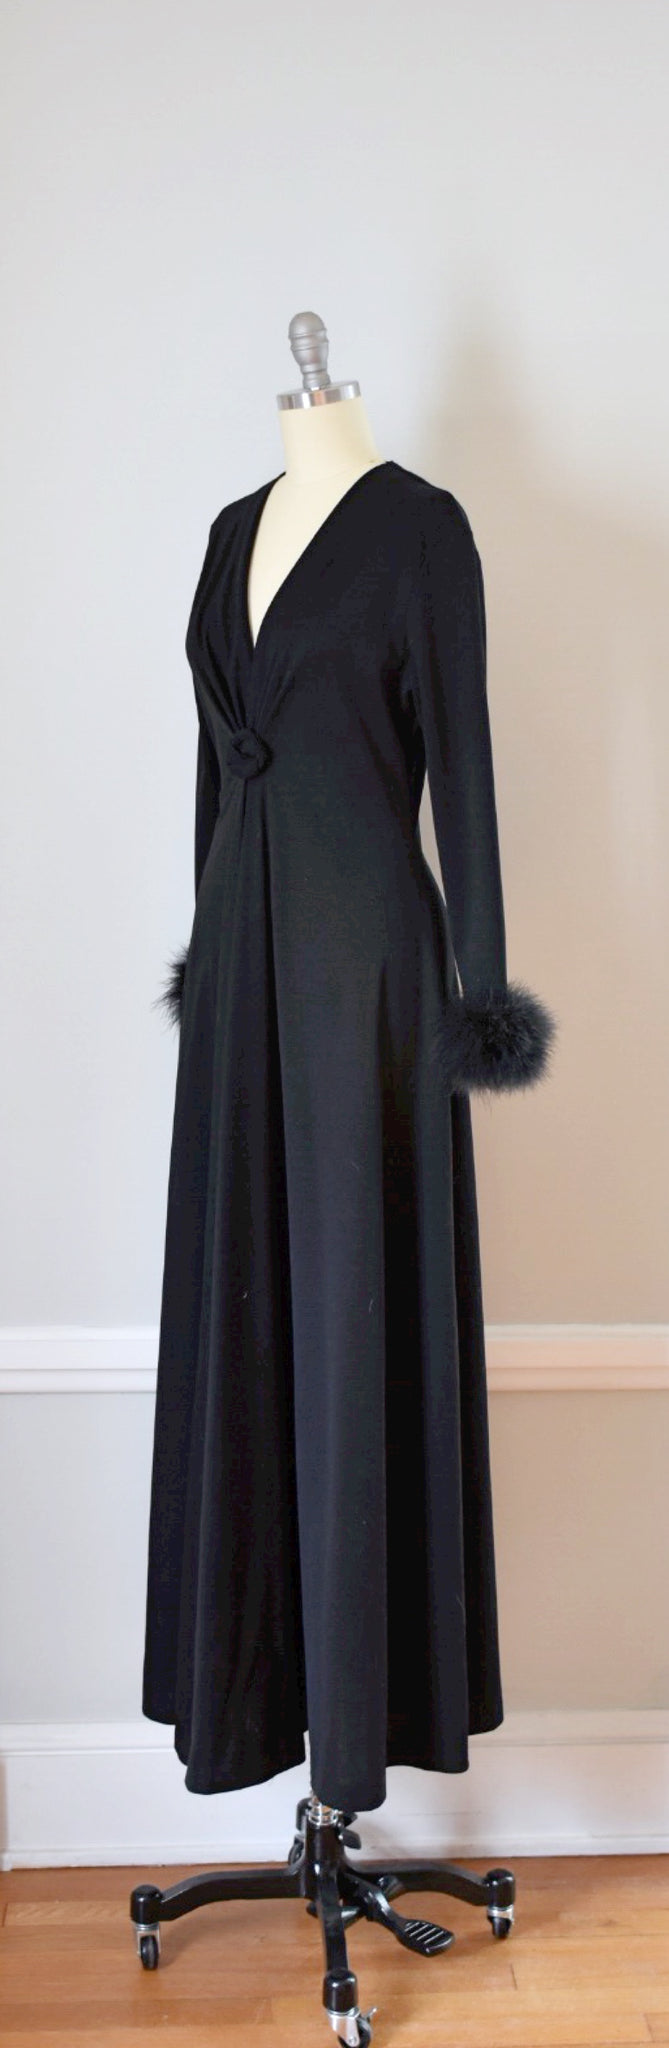 60s Vintage Floor Length Maxi Dress With Ostrich Feathers